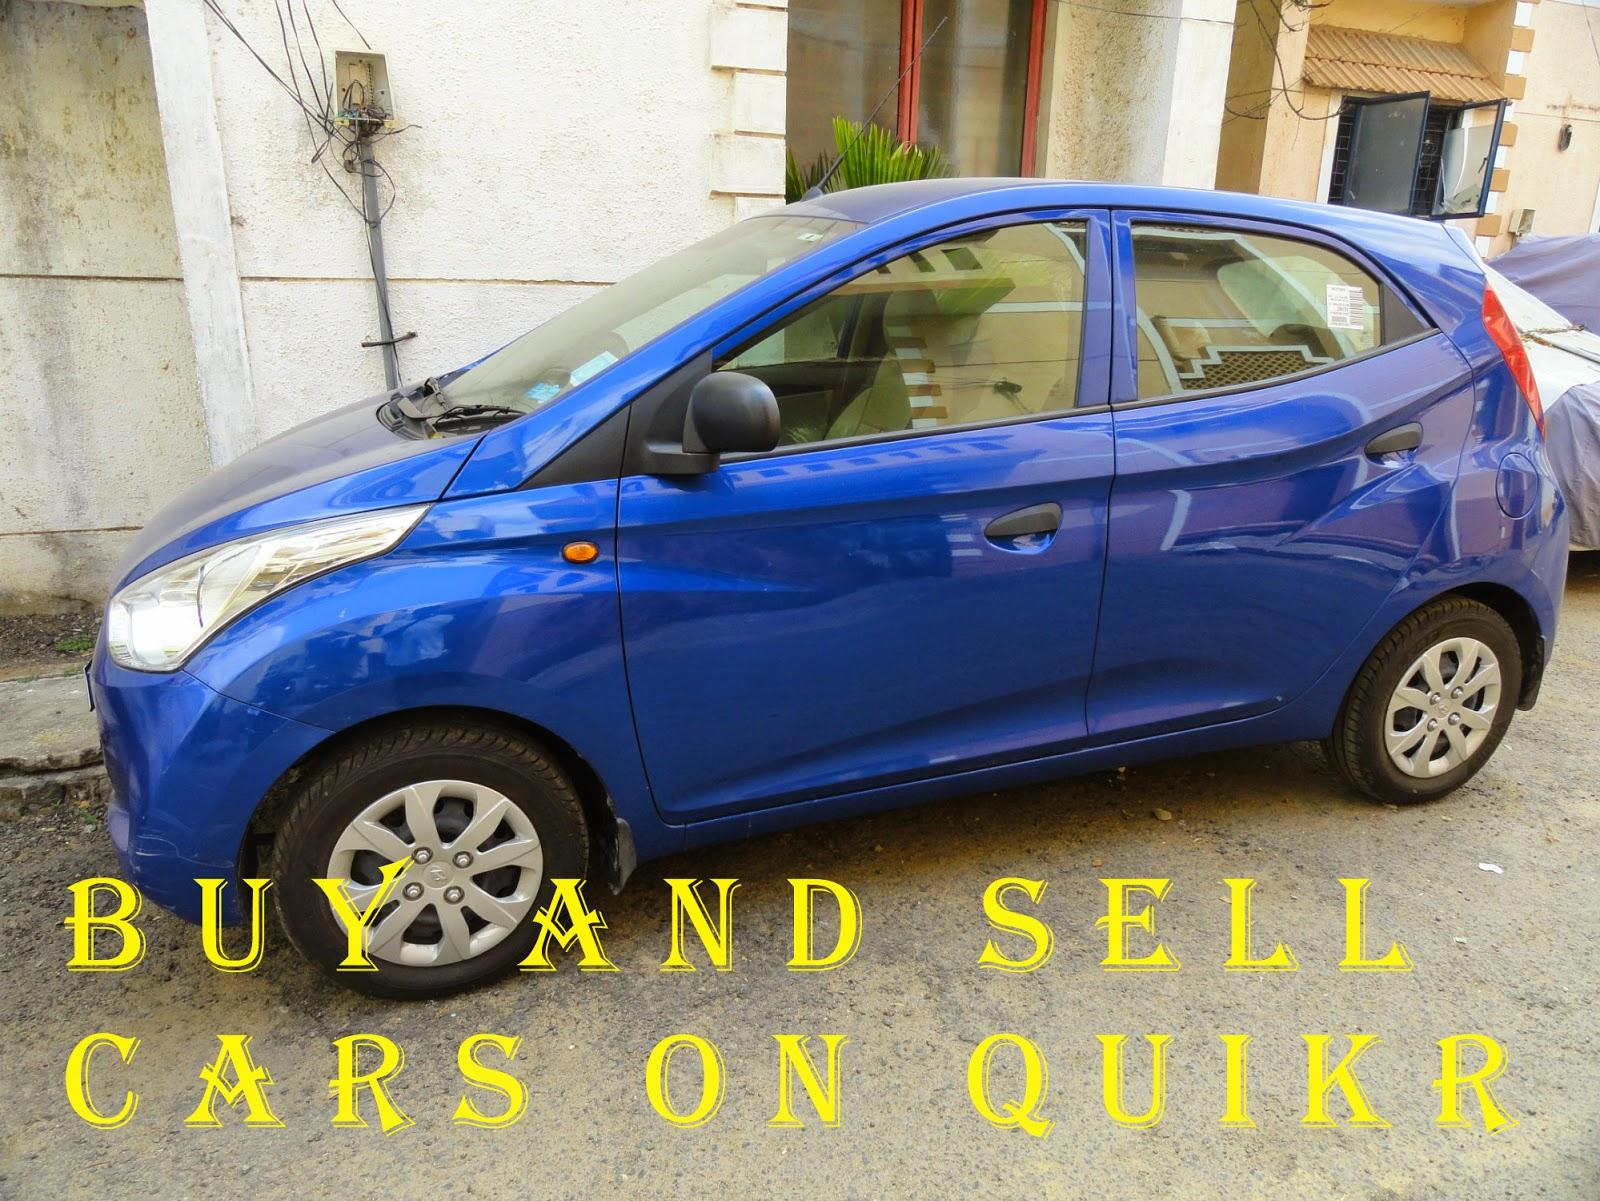 Buy And Sell Cars >> Buy And Sell Cars On Quikr